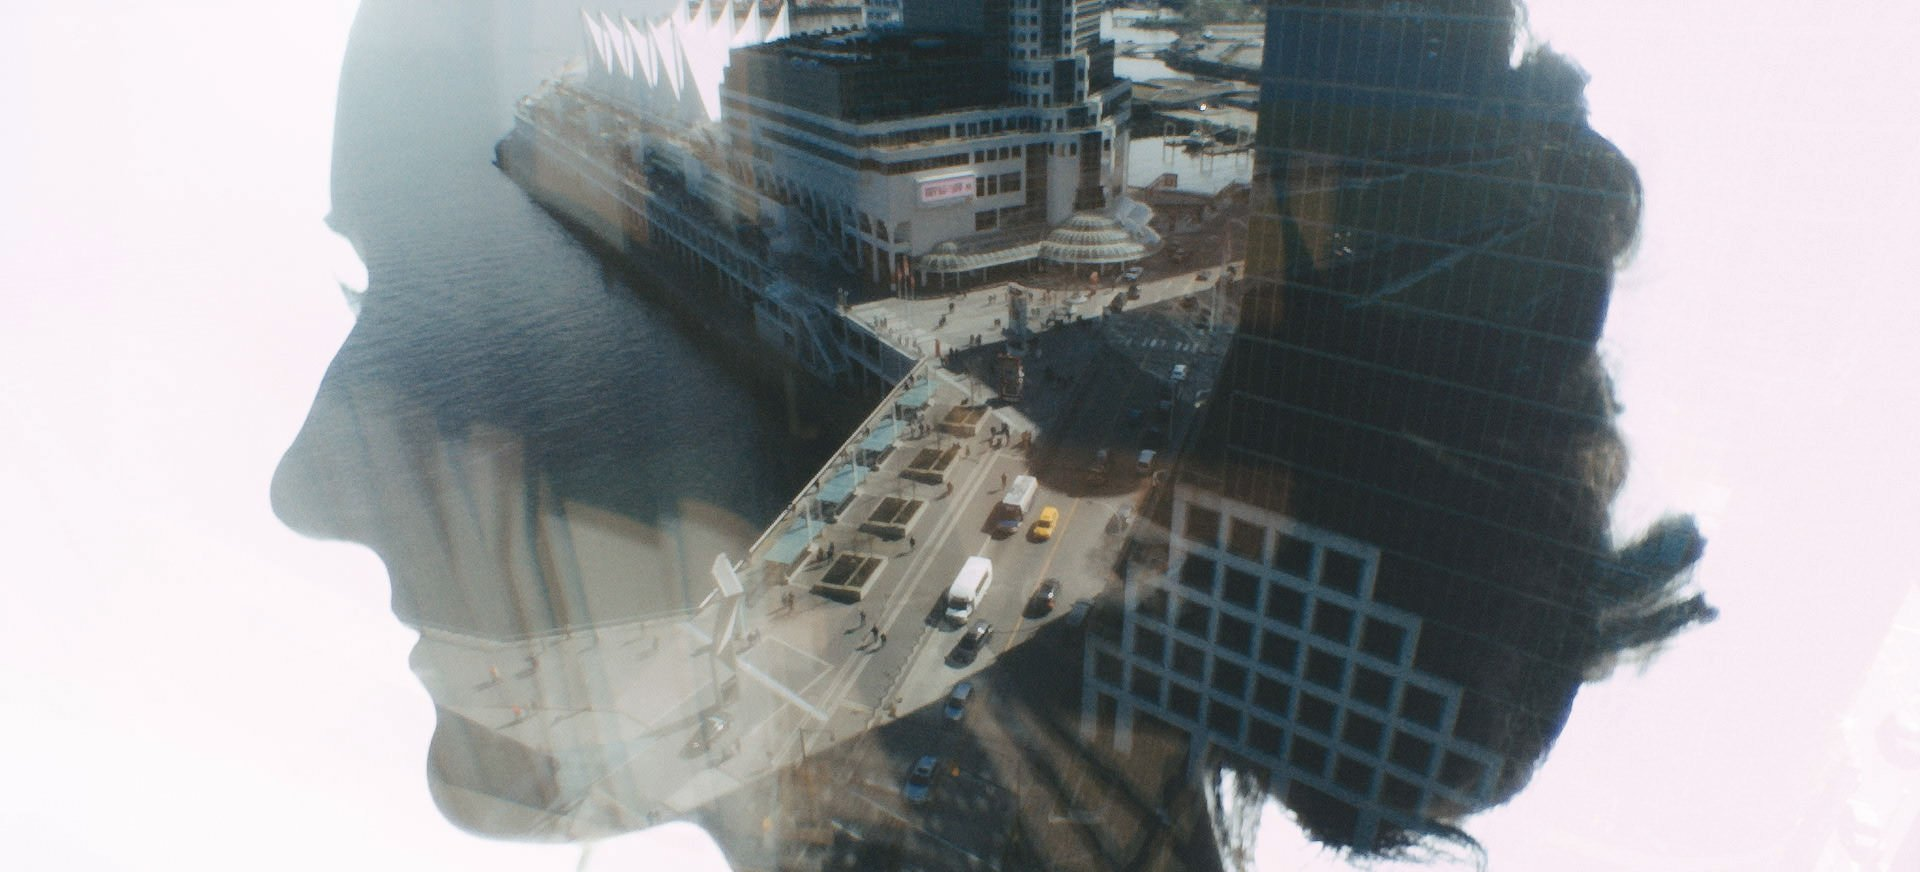 Fairmont Pacific Rim Wedding / Super 8mm Film